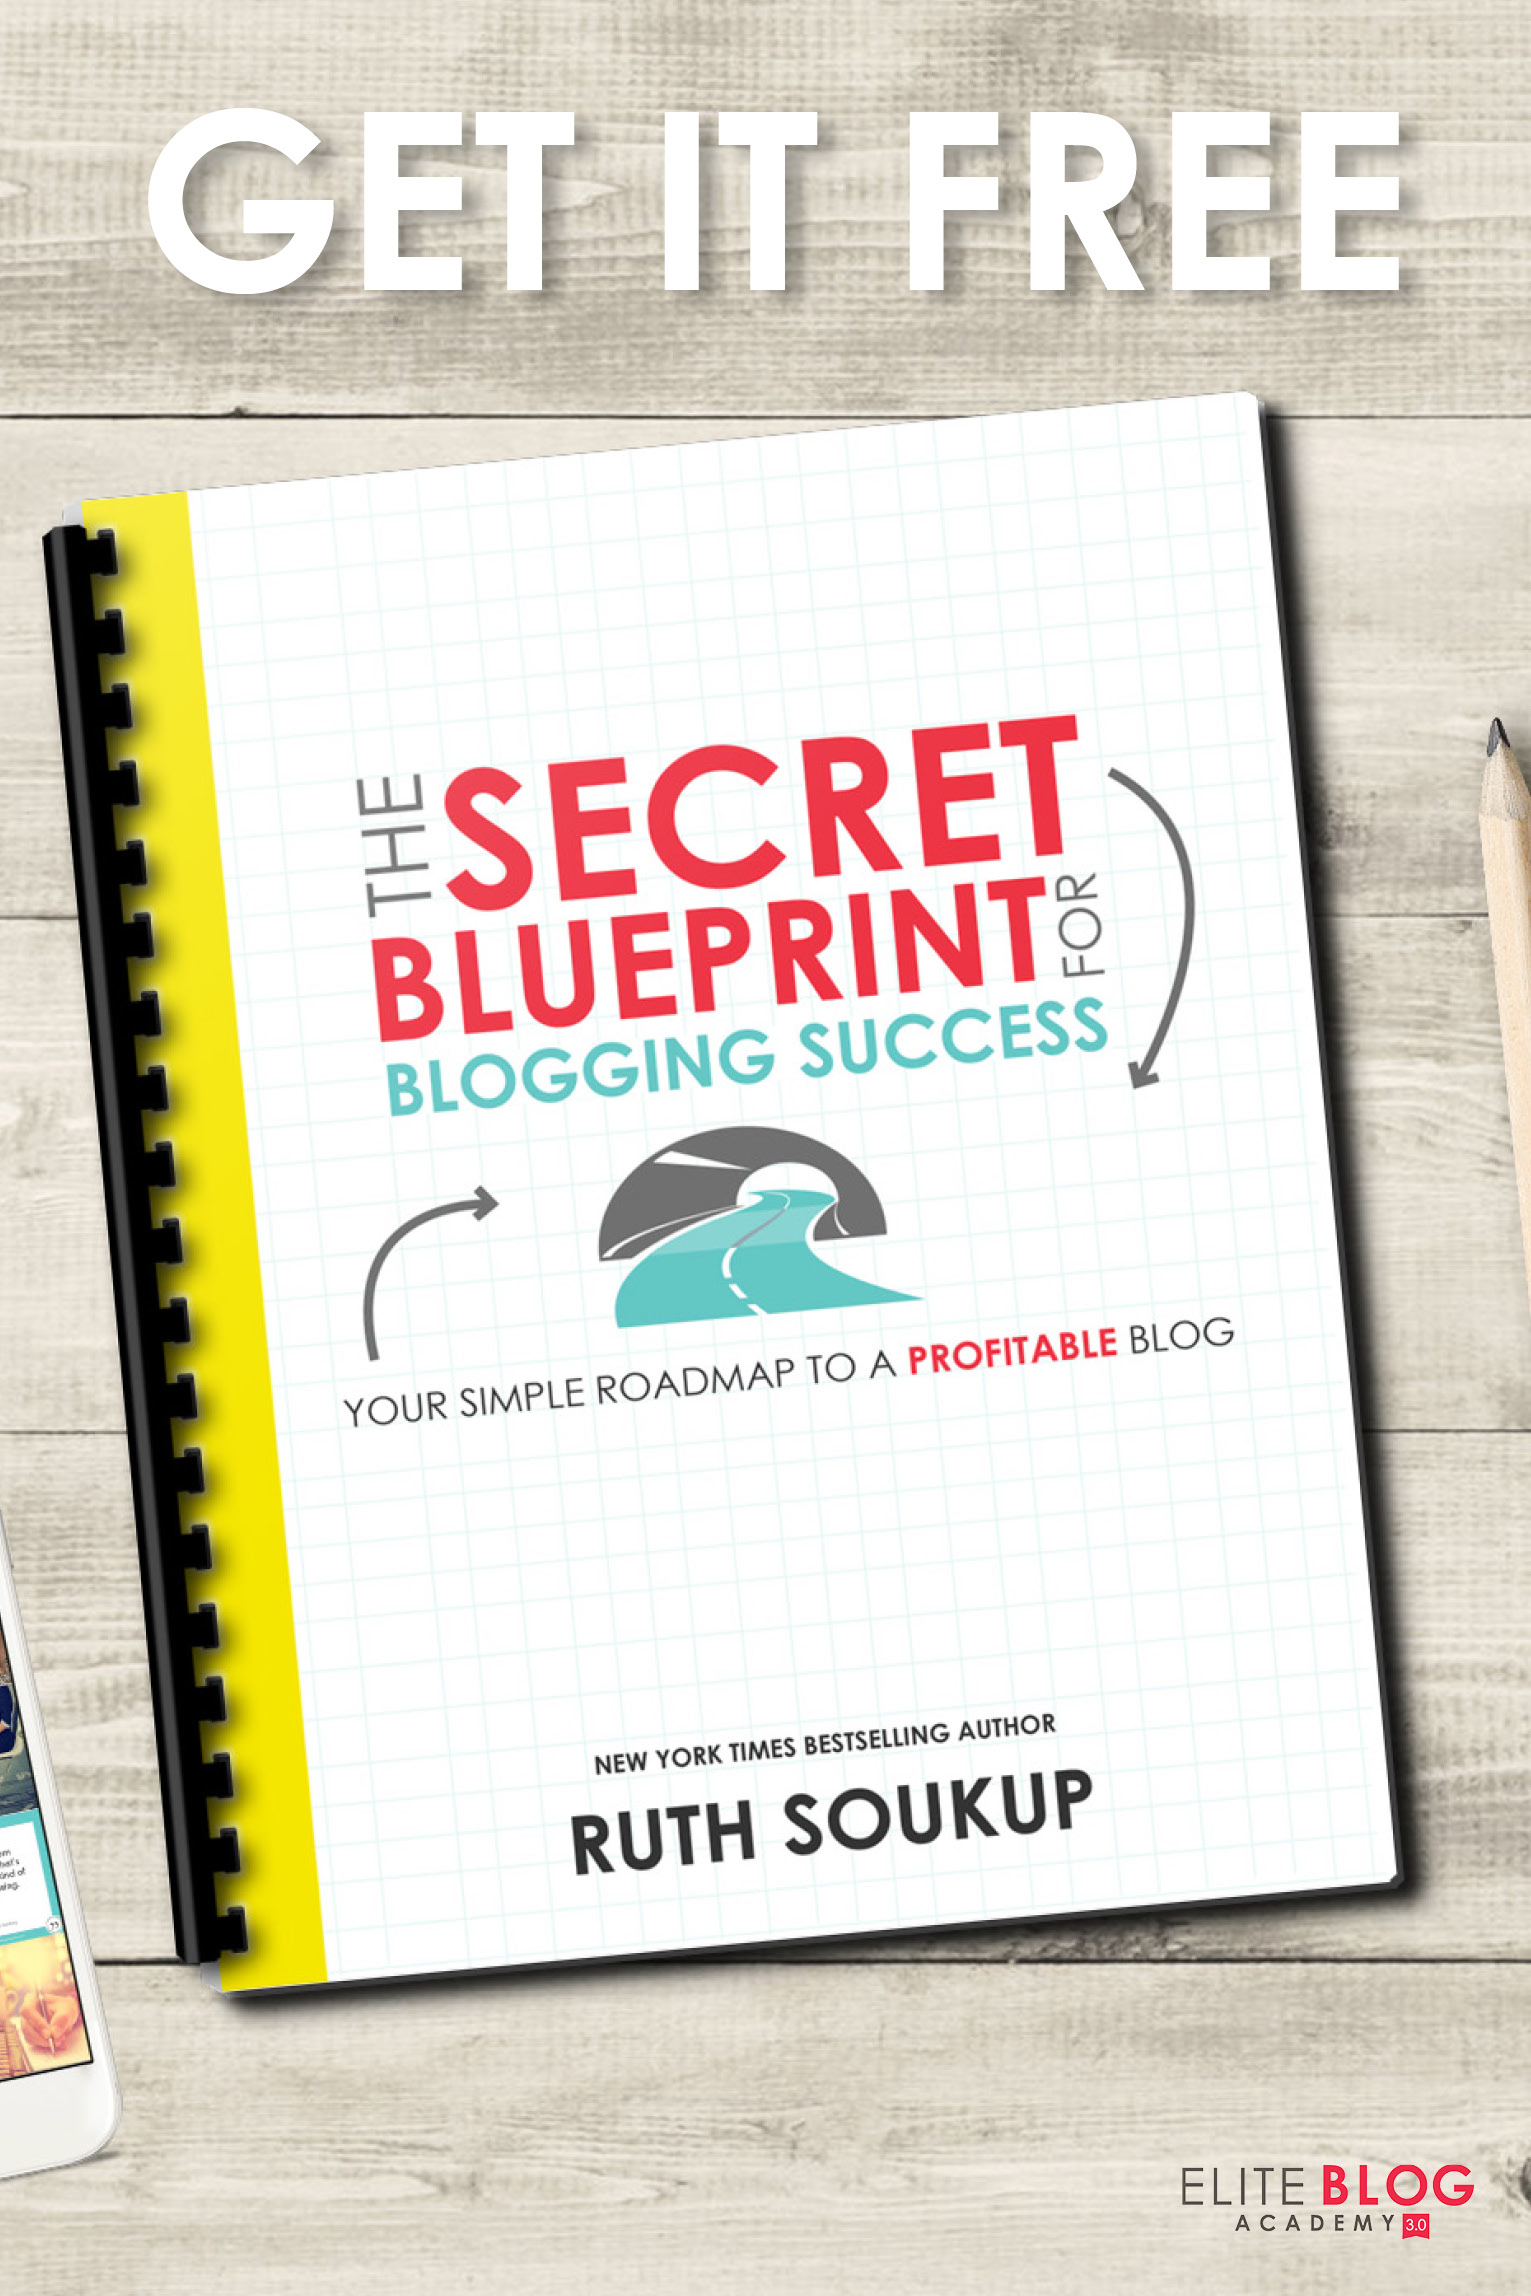 Secret Blueprint For Blogging Success-Pinterest (1).jpg